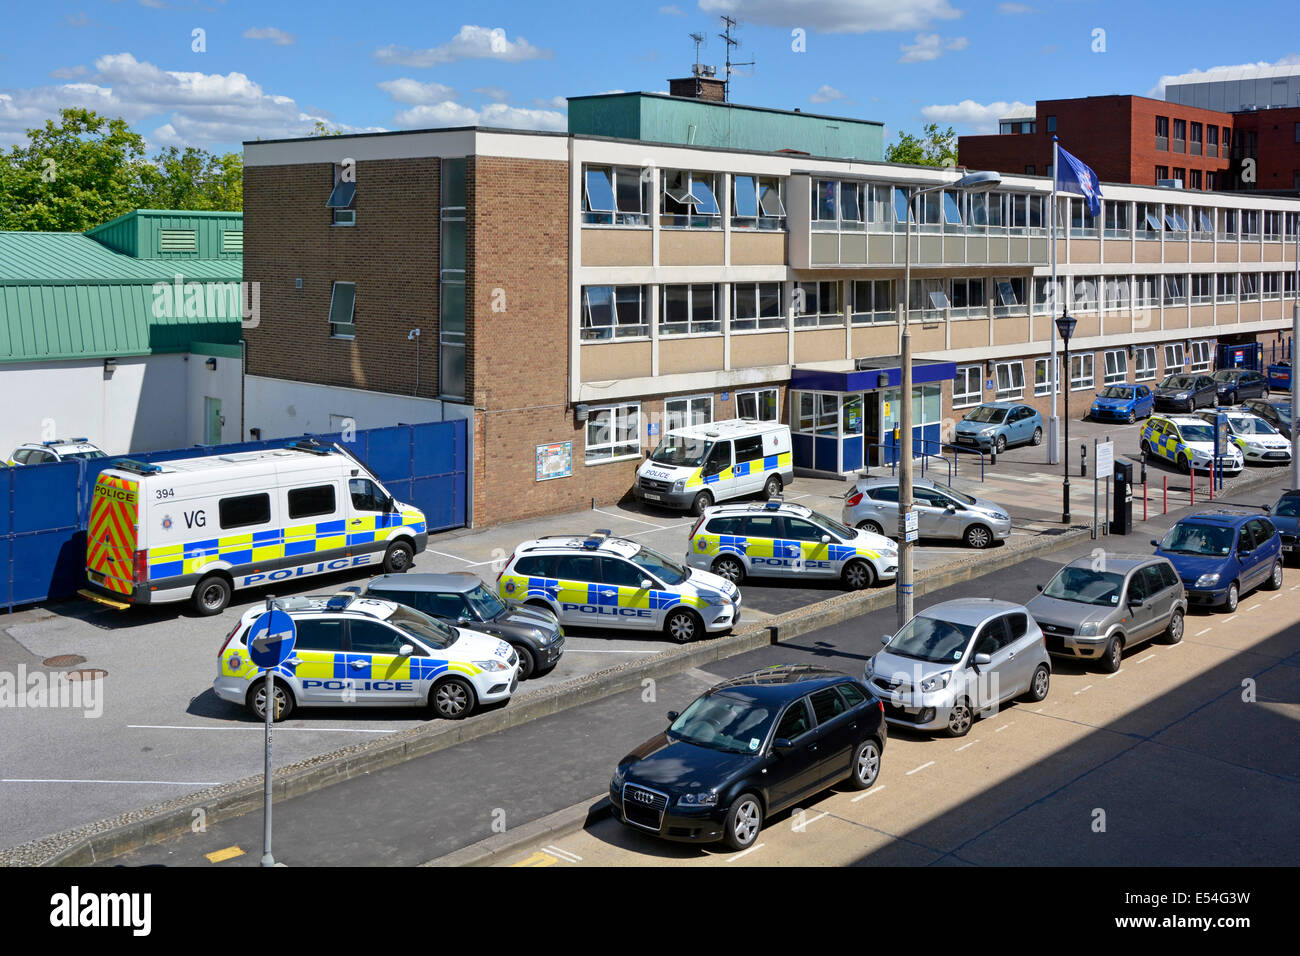 Police cars and vans parked outside entrance to Basildon police station - Stock Image